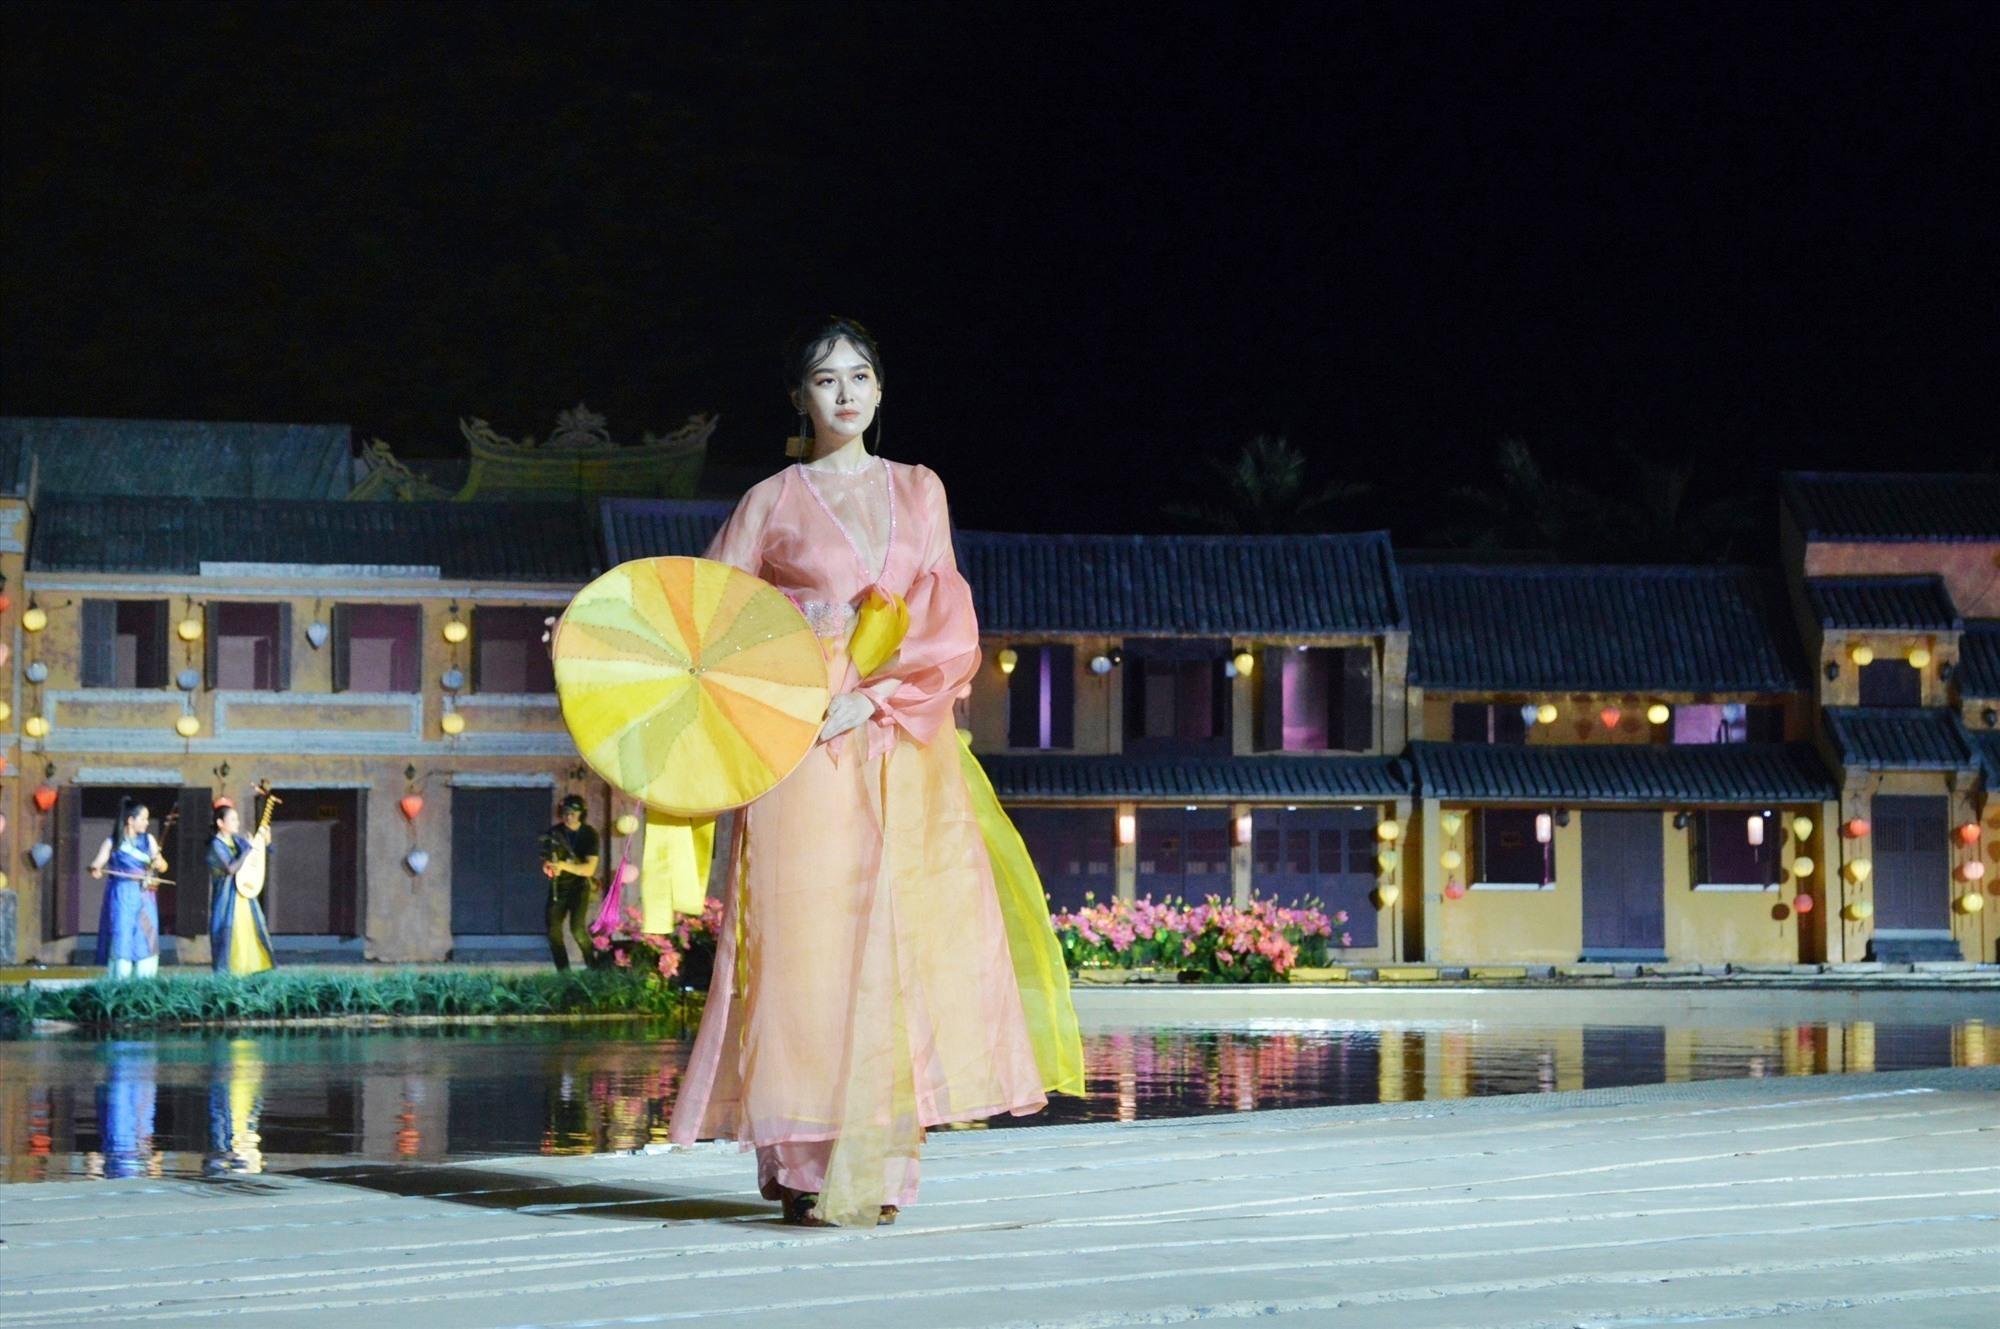 The festival aimed to attract tourists to Hoi An and contribute to the conservation and promotion of Vietnam's cultural heritages.